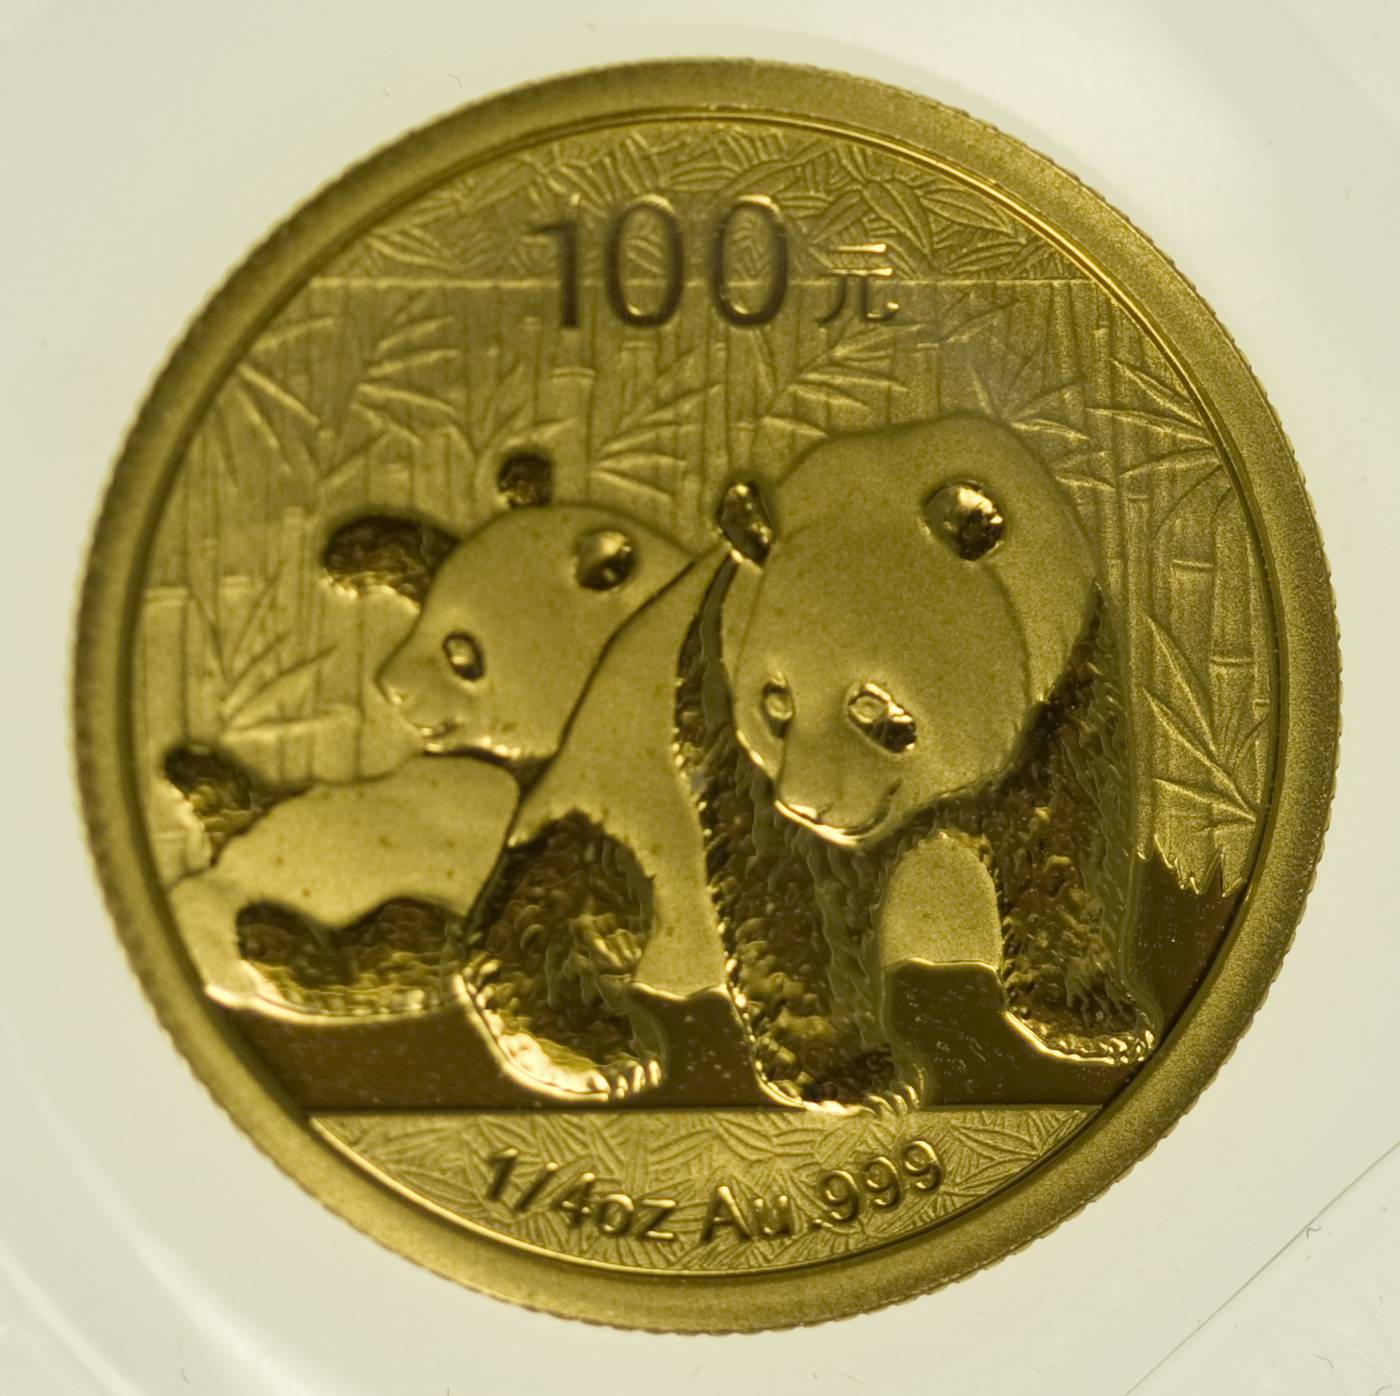 1/4 Unze Goldmünze China Panda 2010 100 Yuan 7,78 Gramm fein Gold RAR